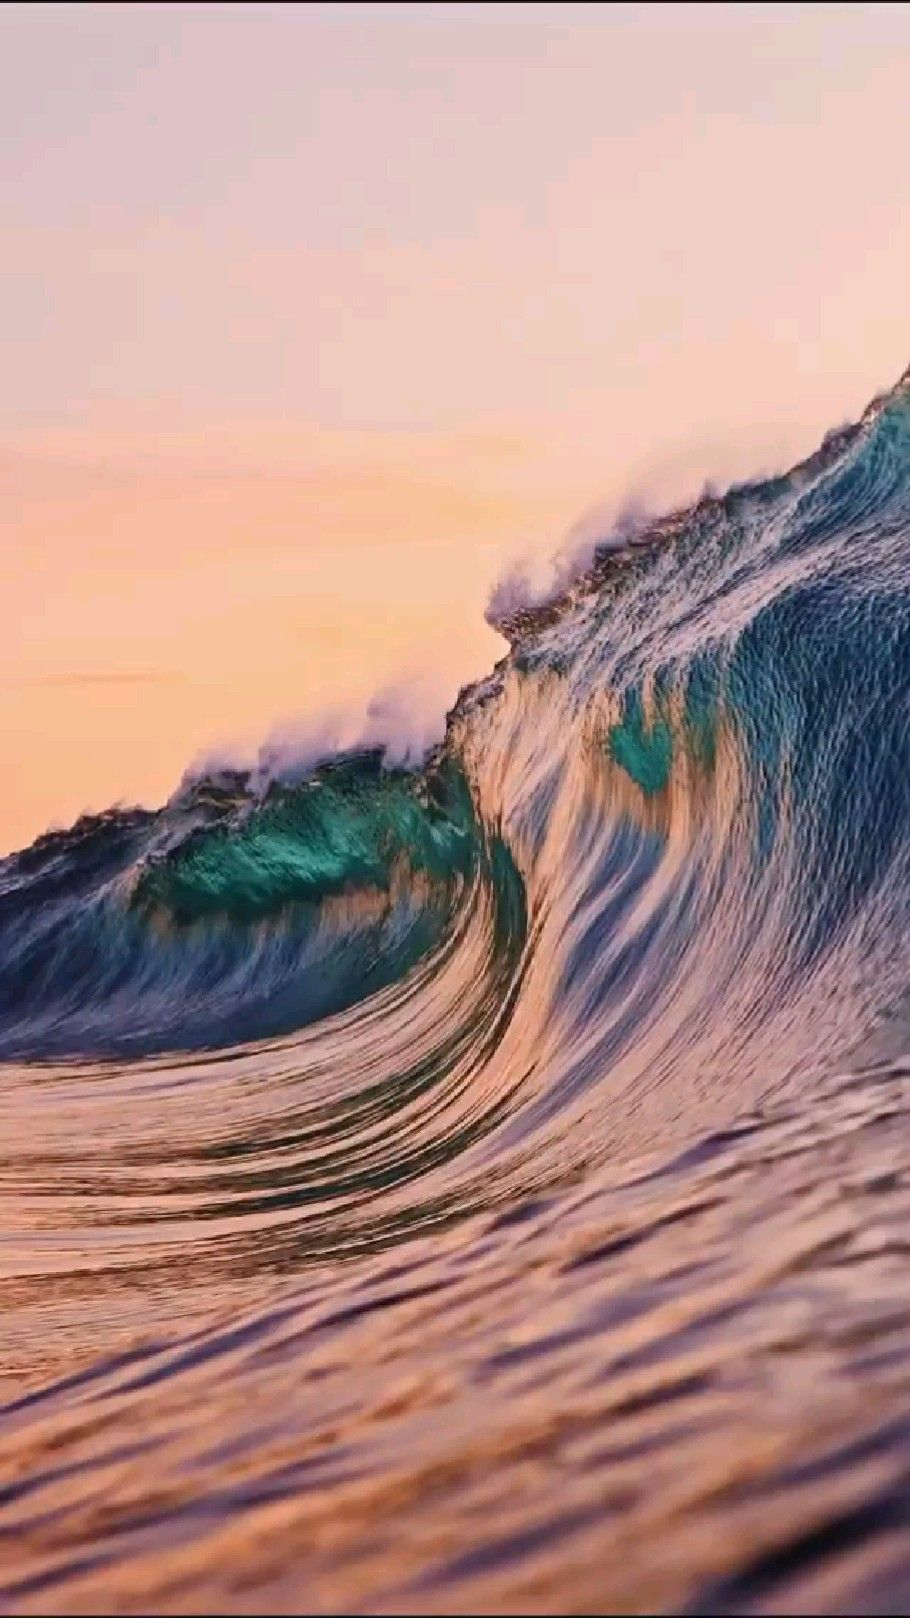 Amazing crystal wave in the Ocean